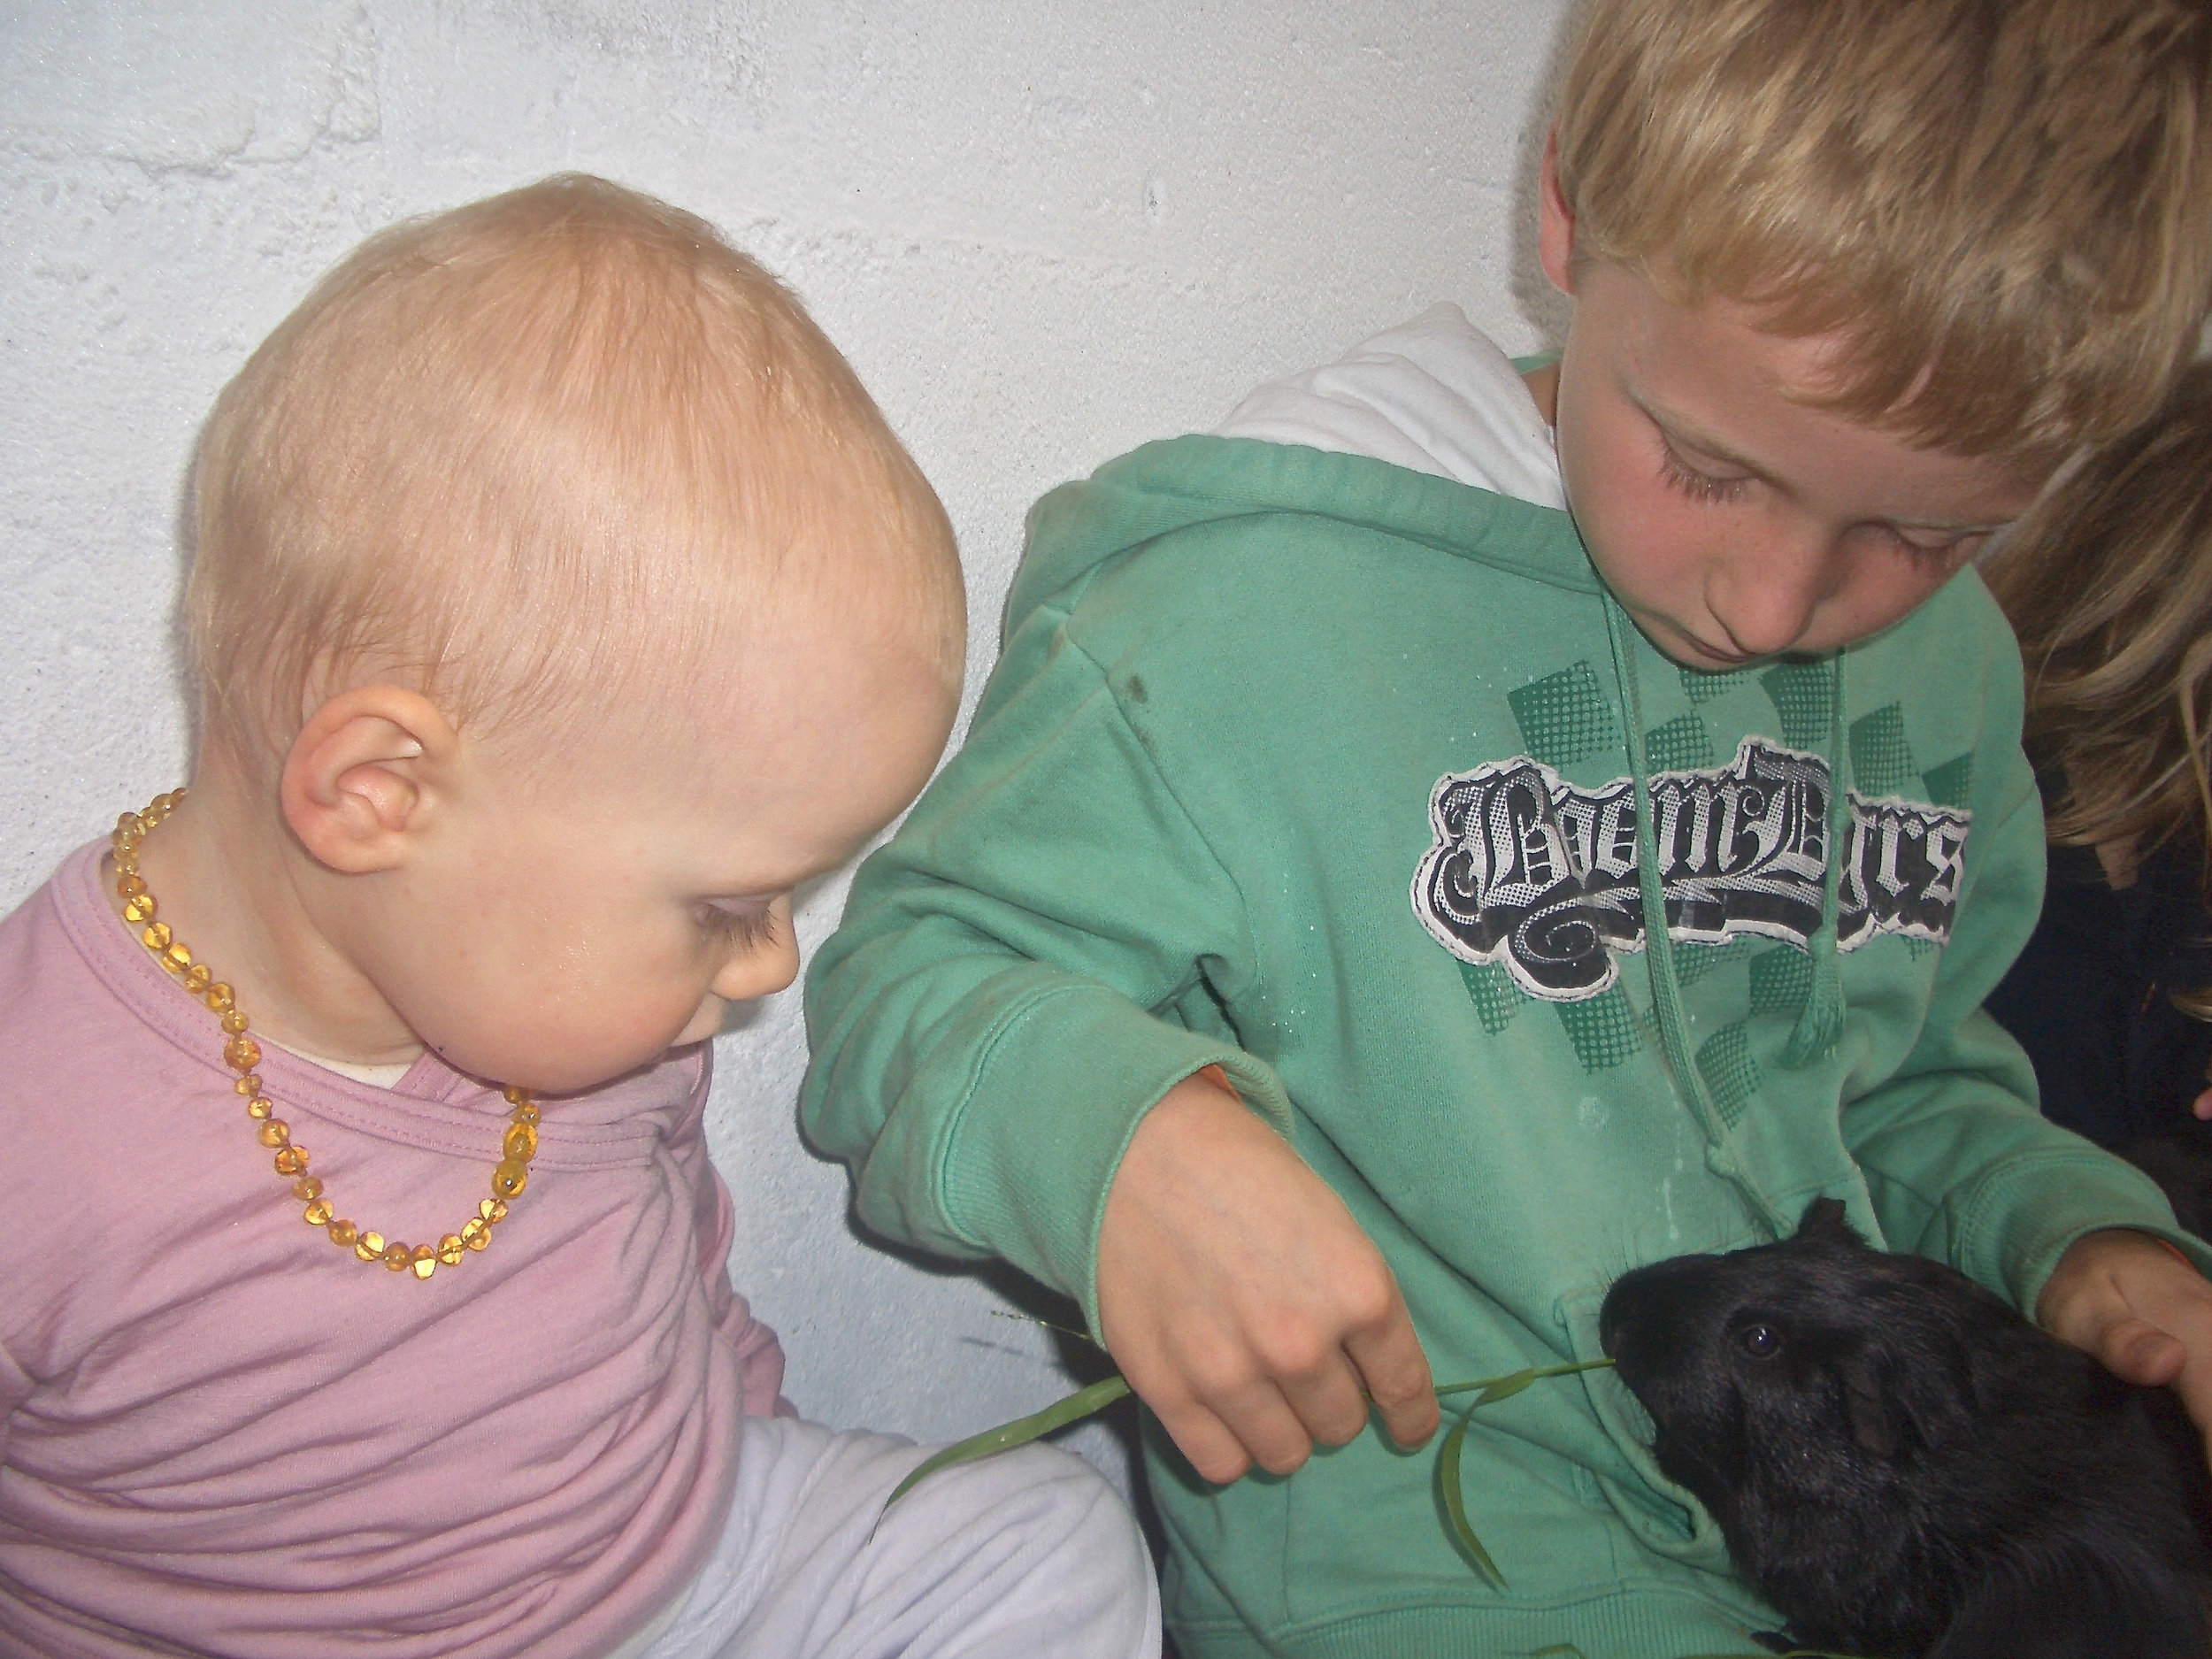 image to illustrate joint attention: children with guinea pig